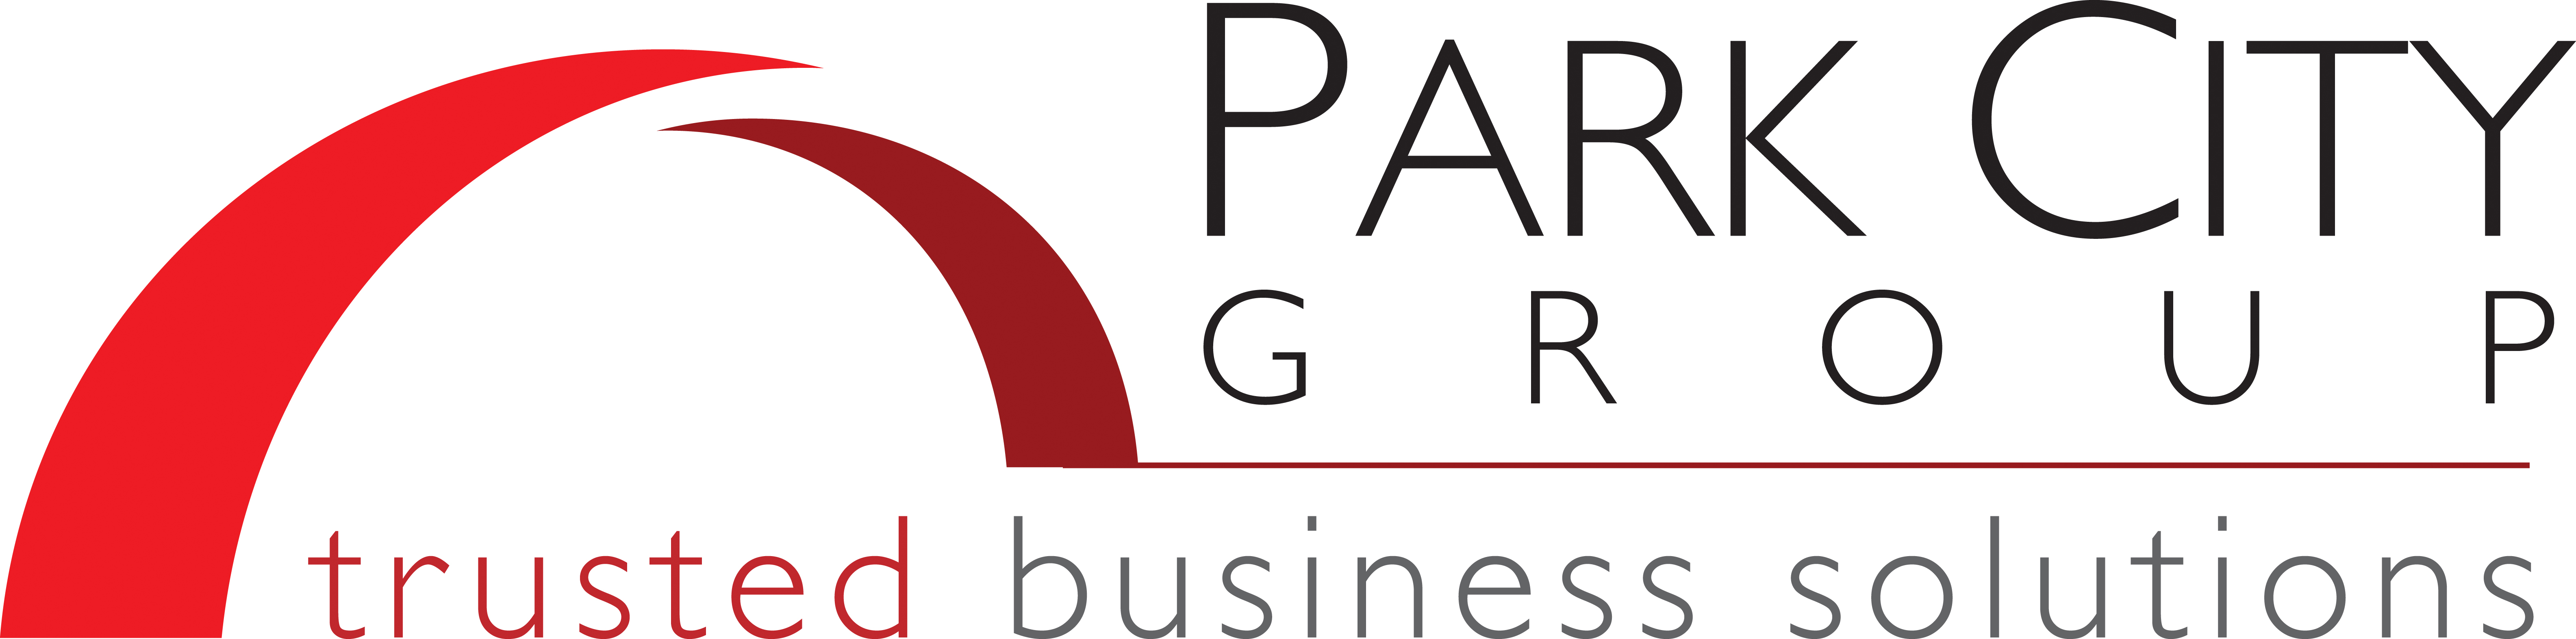 Park City Group, Inc. to Present at the 27th Annual Roth Investor Conference in Dana Point, California on March 10, 2015